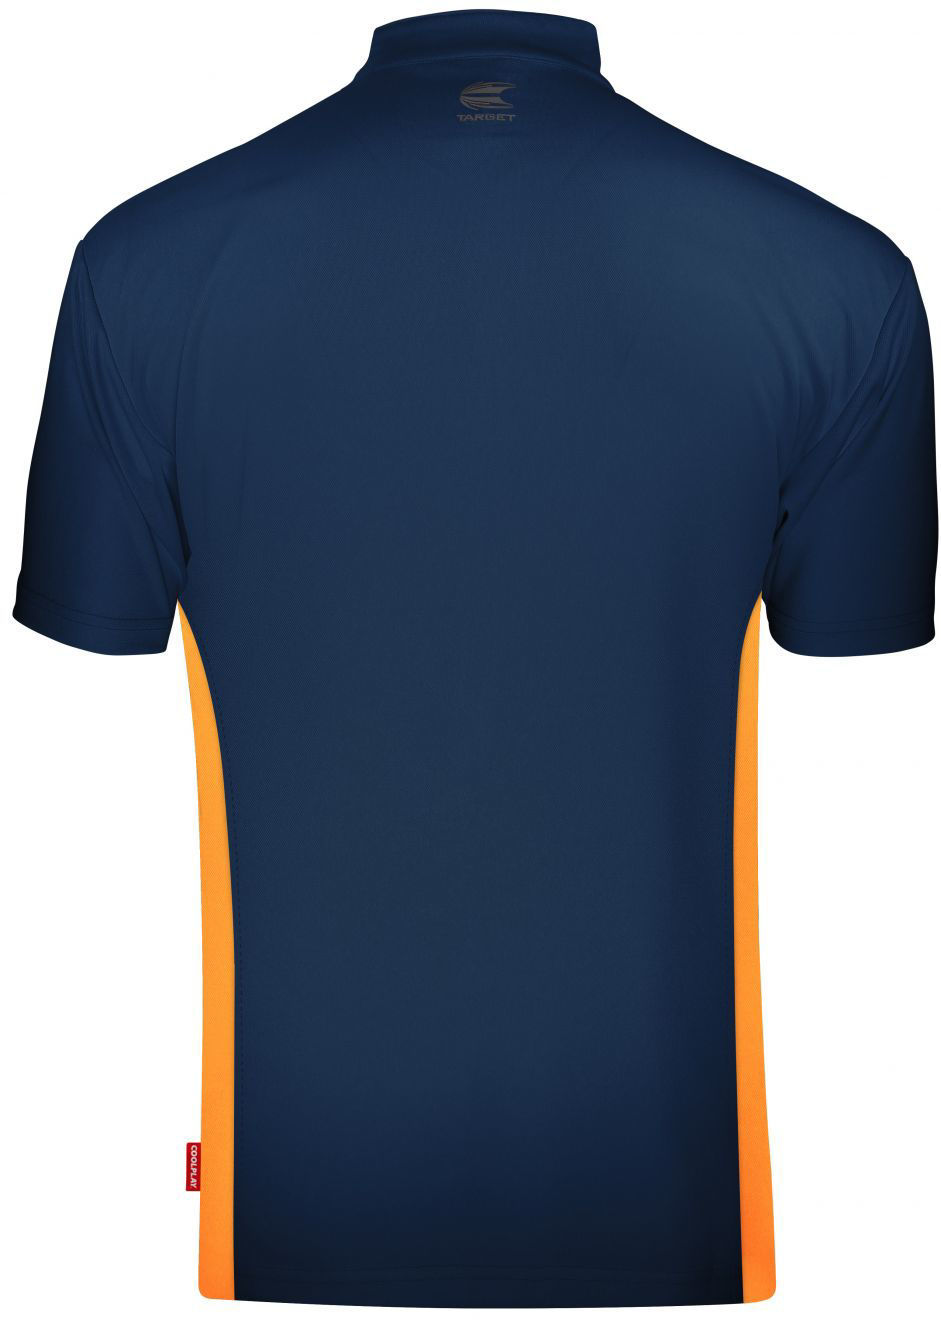 Afbeelding van Target Coolplay Collarless Dark Blue Orange